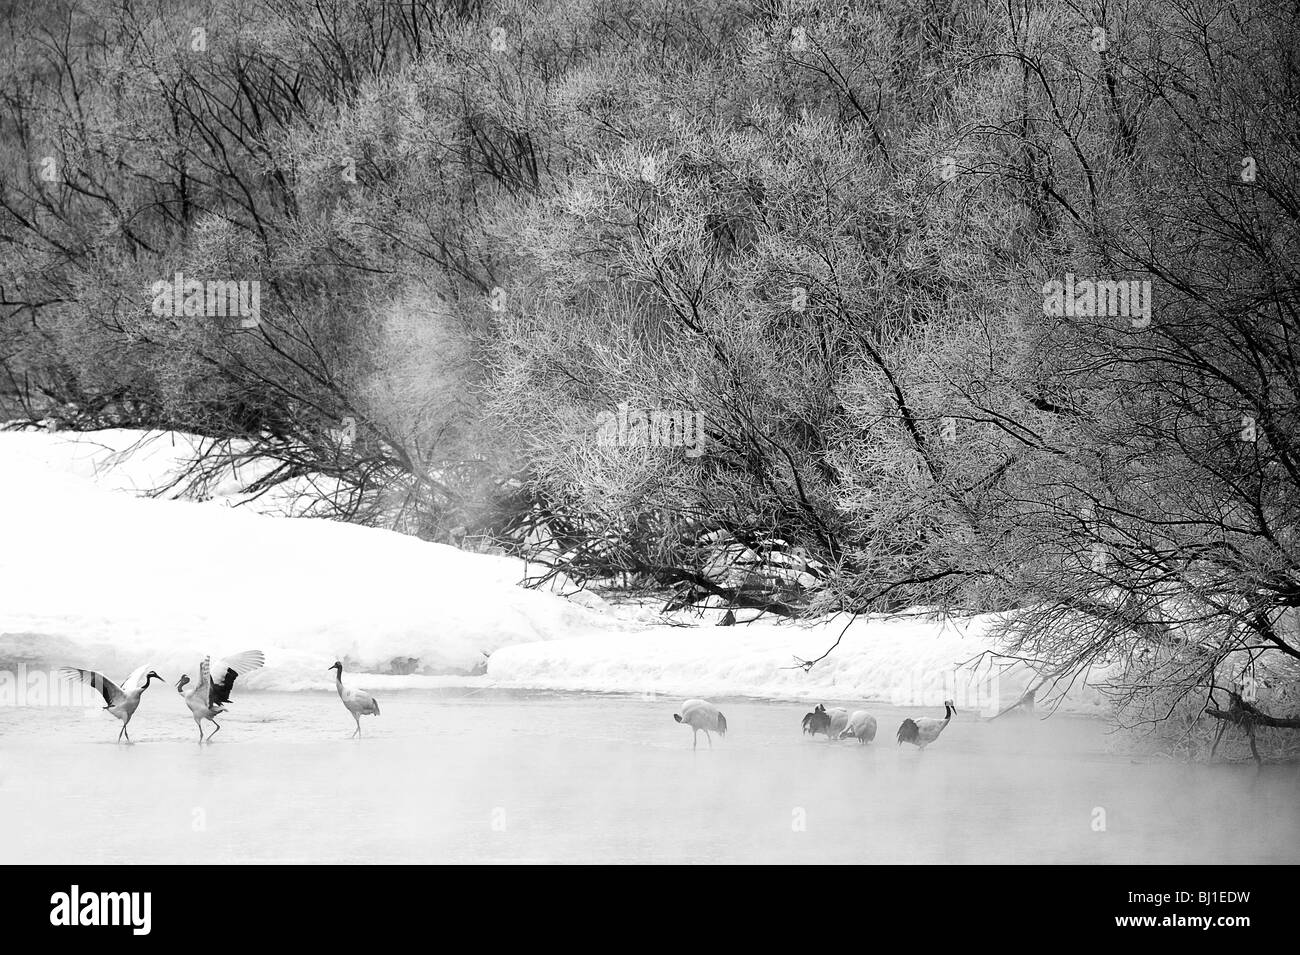 Roosting Endangered Japanese Red Crested Cranes in the river - Hokkaido, Japan - Stock Image